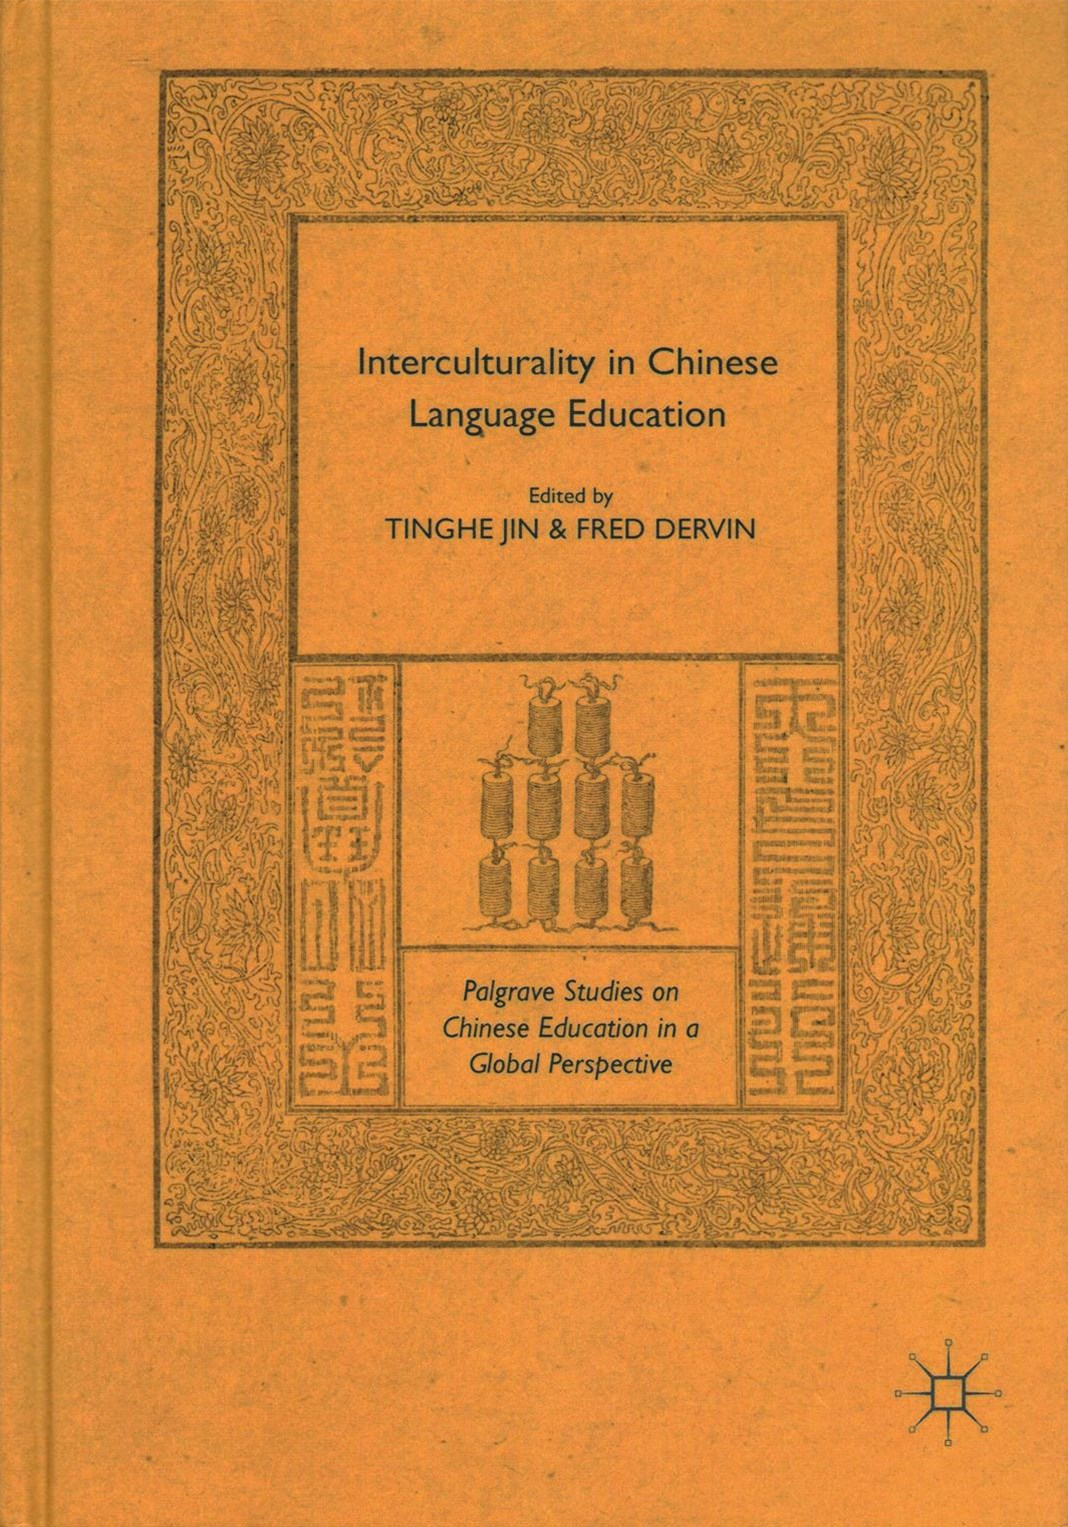 Interculturality in Chinese Language Education